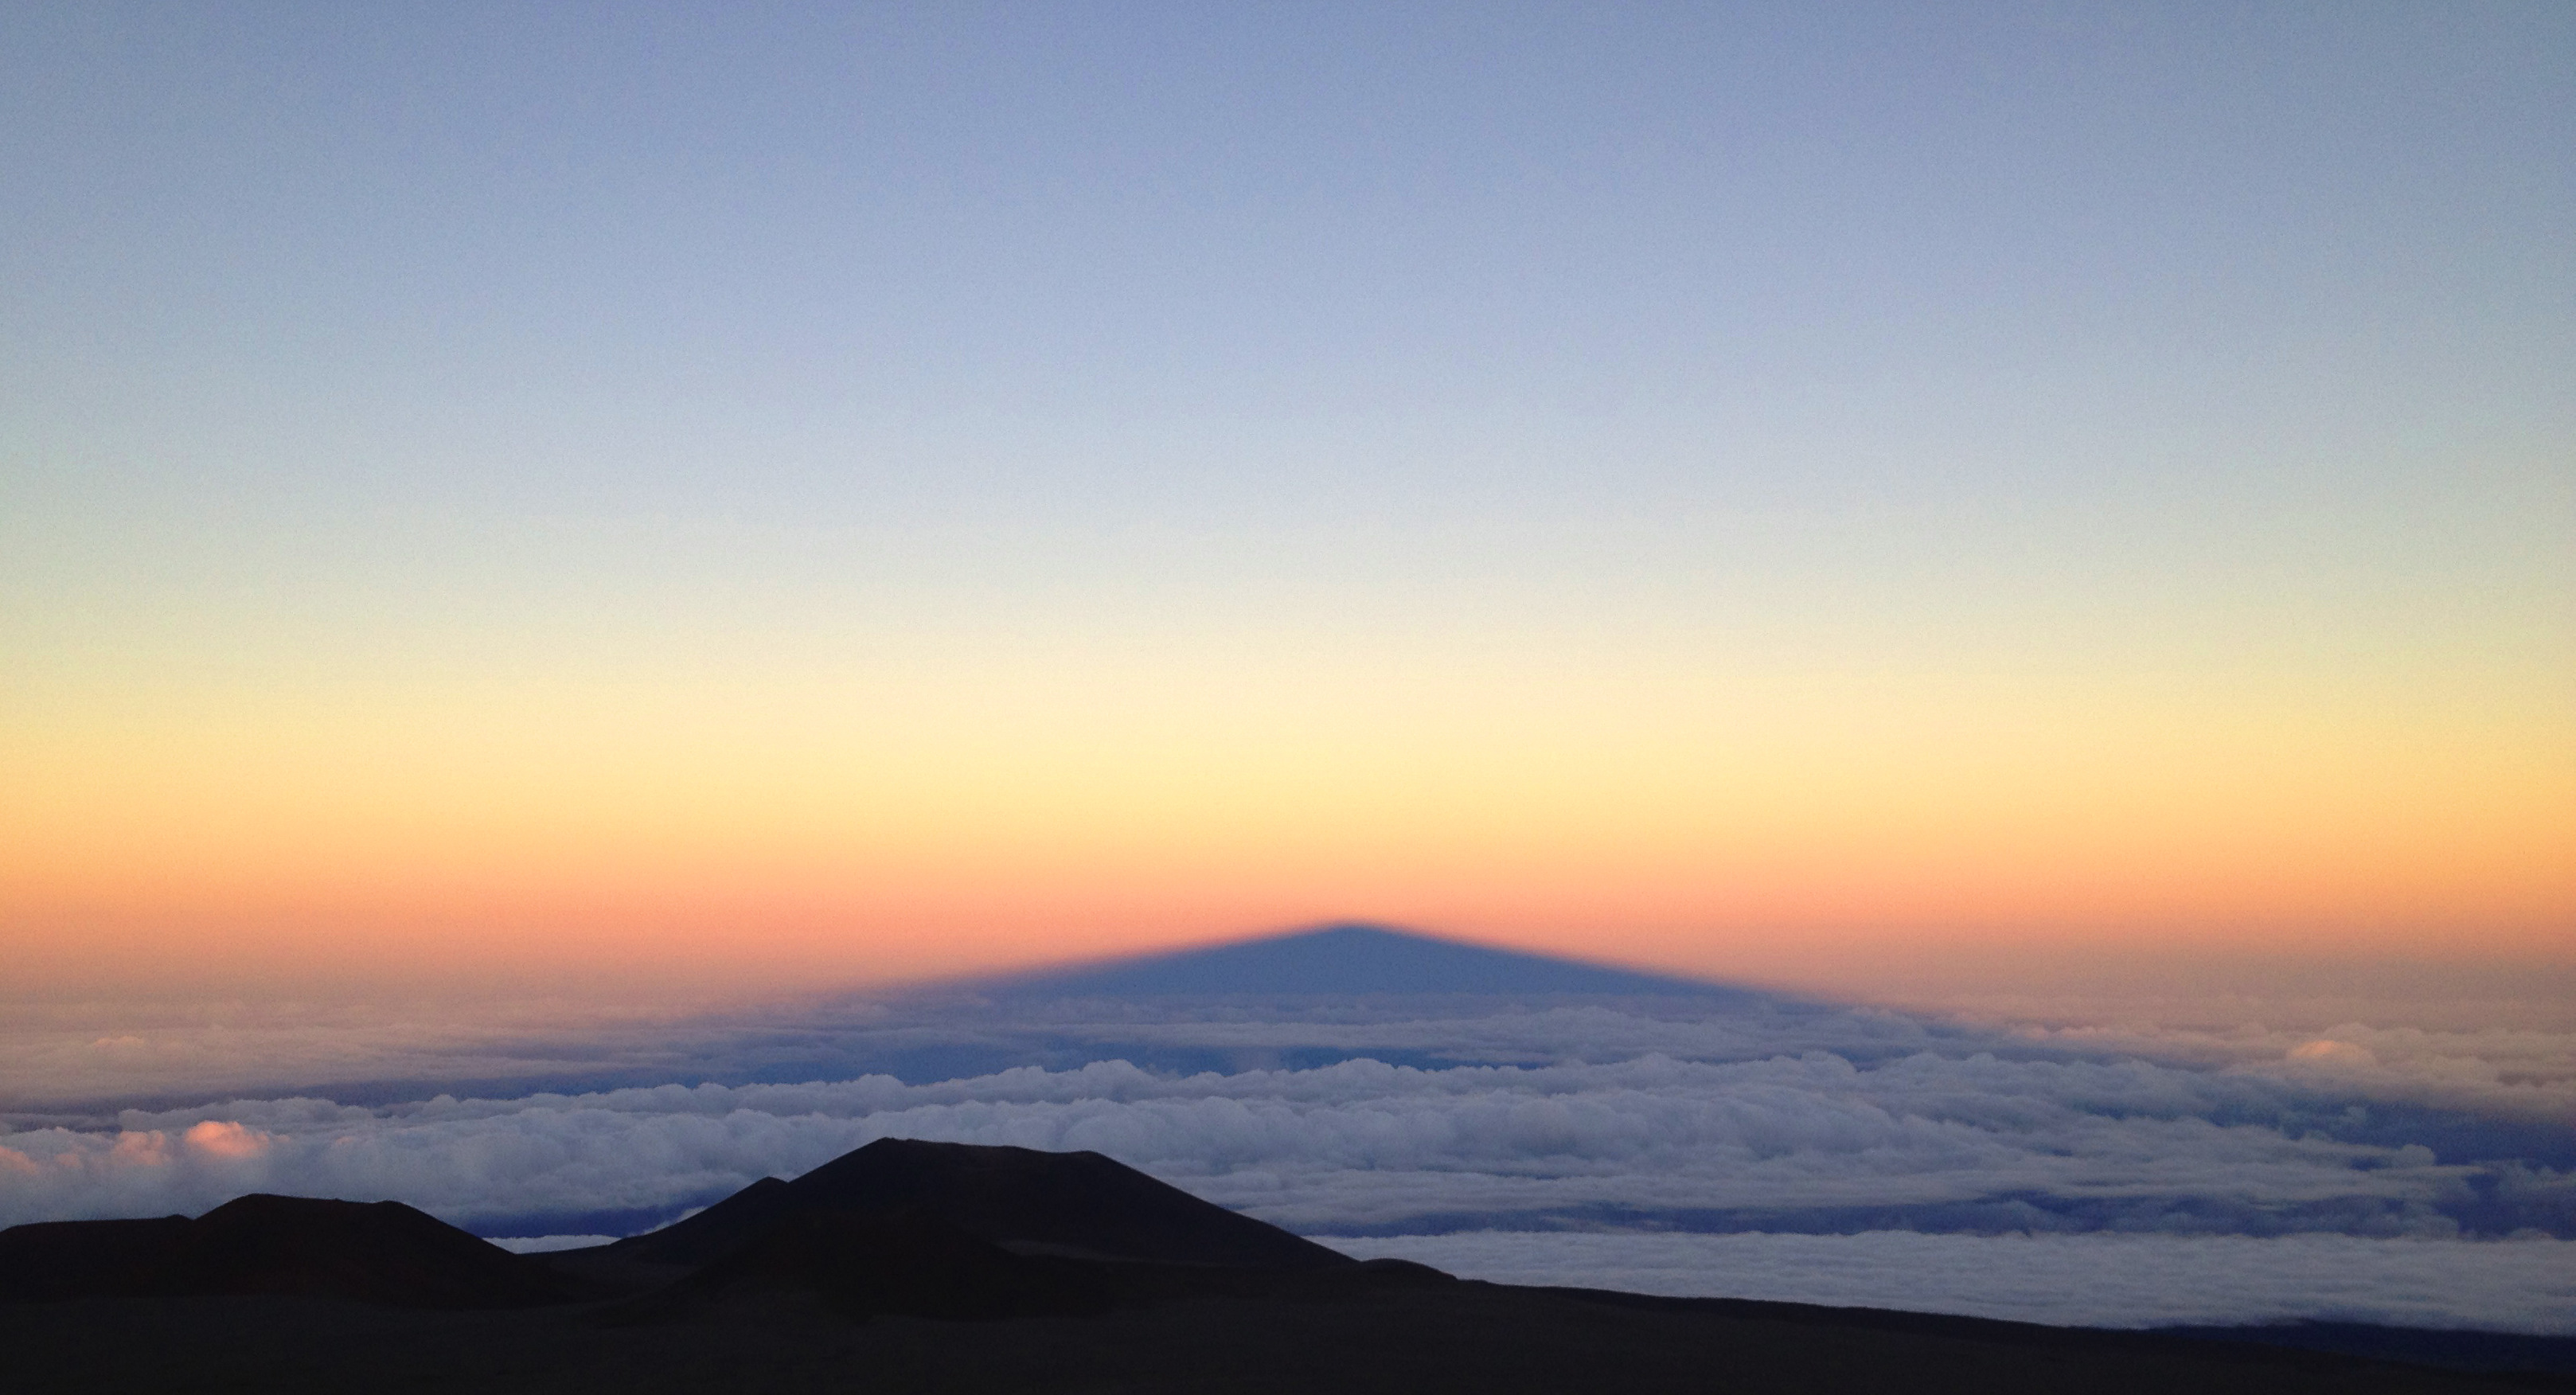 The shadow of Mauna Kea peak on the clouds down below